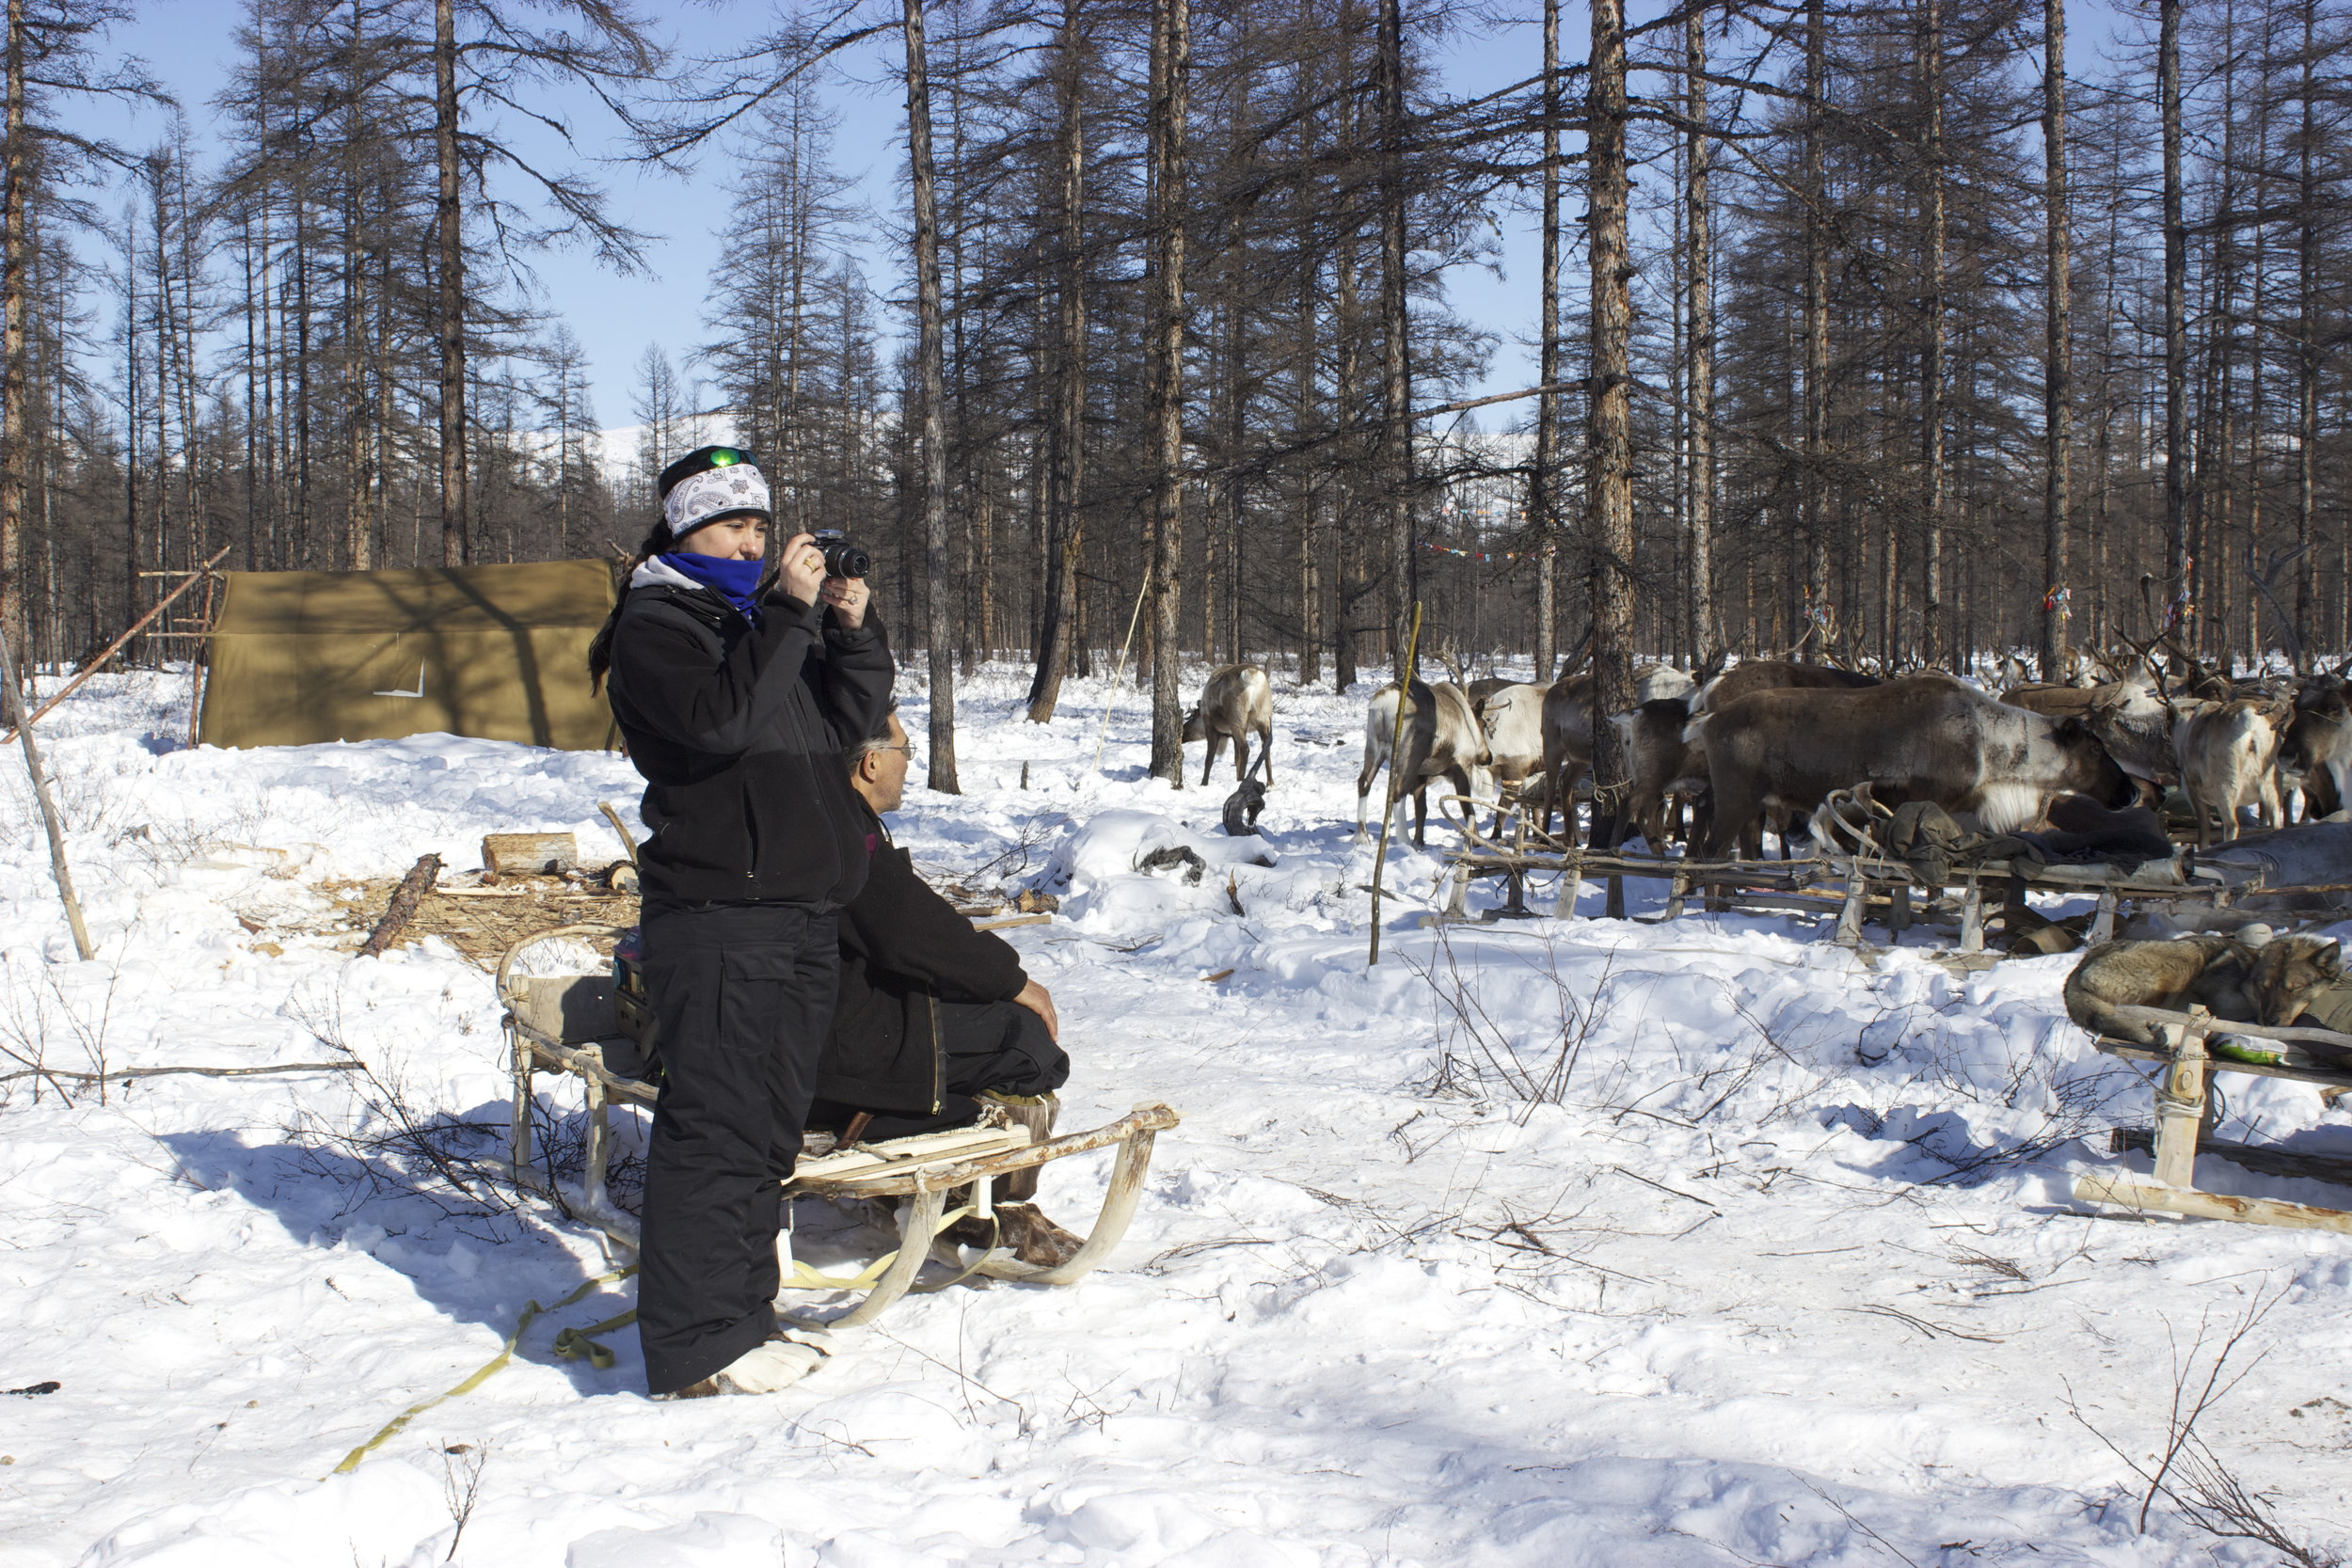 Stacy Rasmus engaged in peer observation of research at reindeer herding camp in Siberia. Photo: Stacy Rasmus